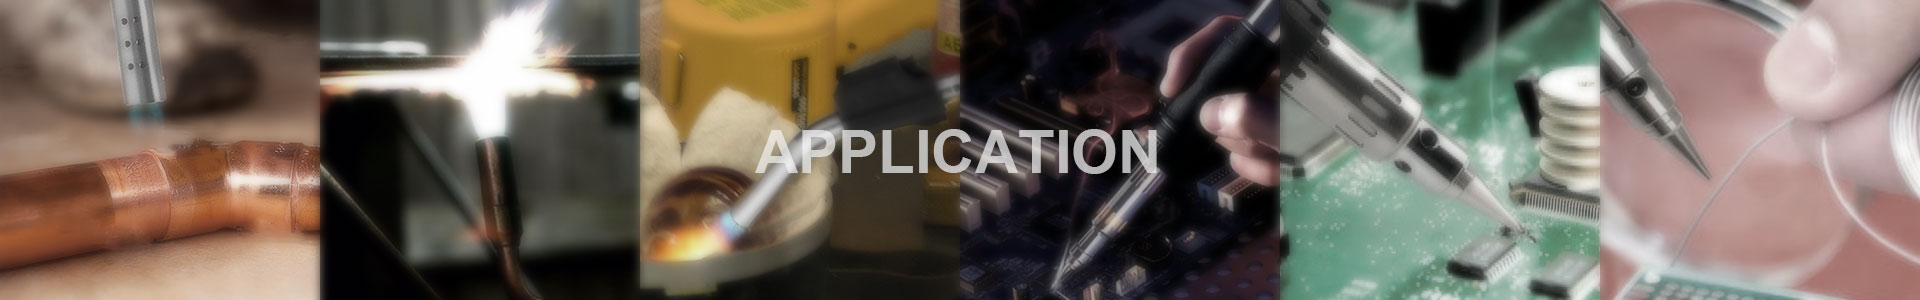 Application - E-Catalog